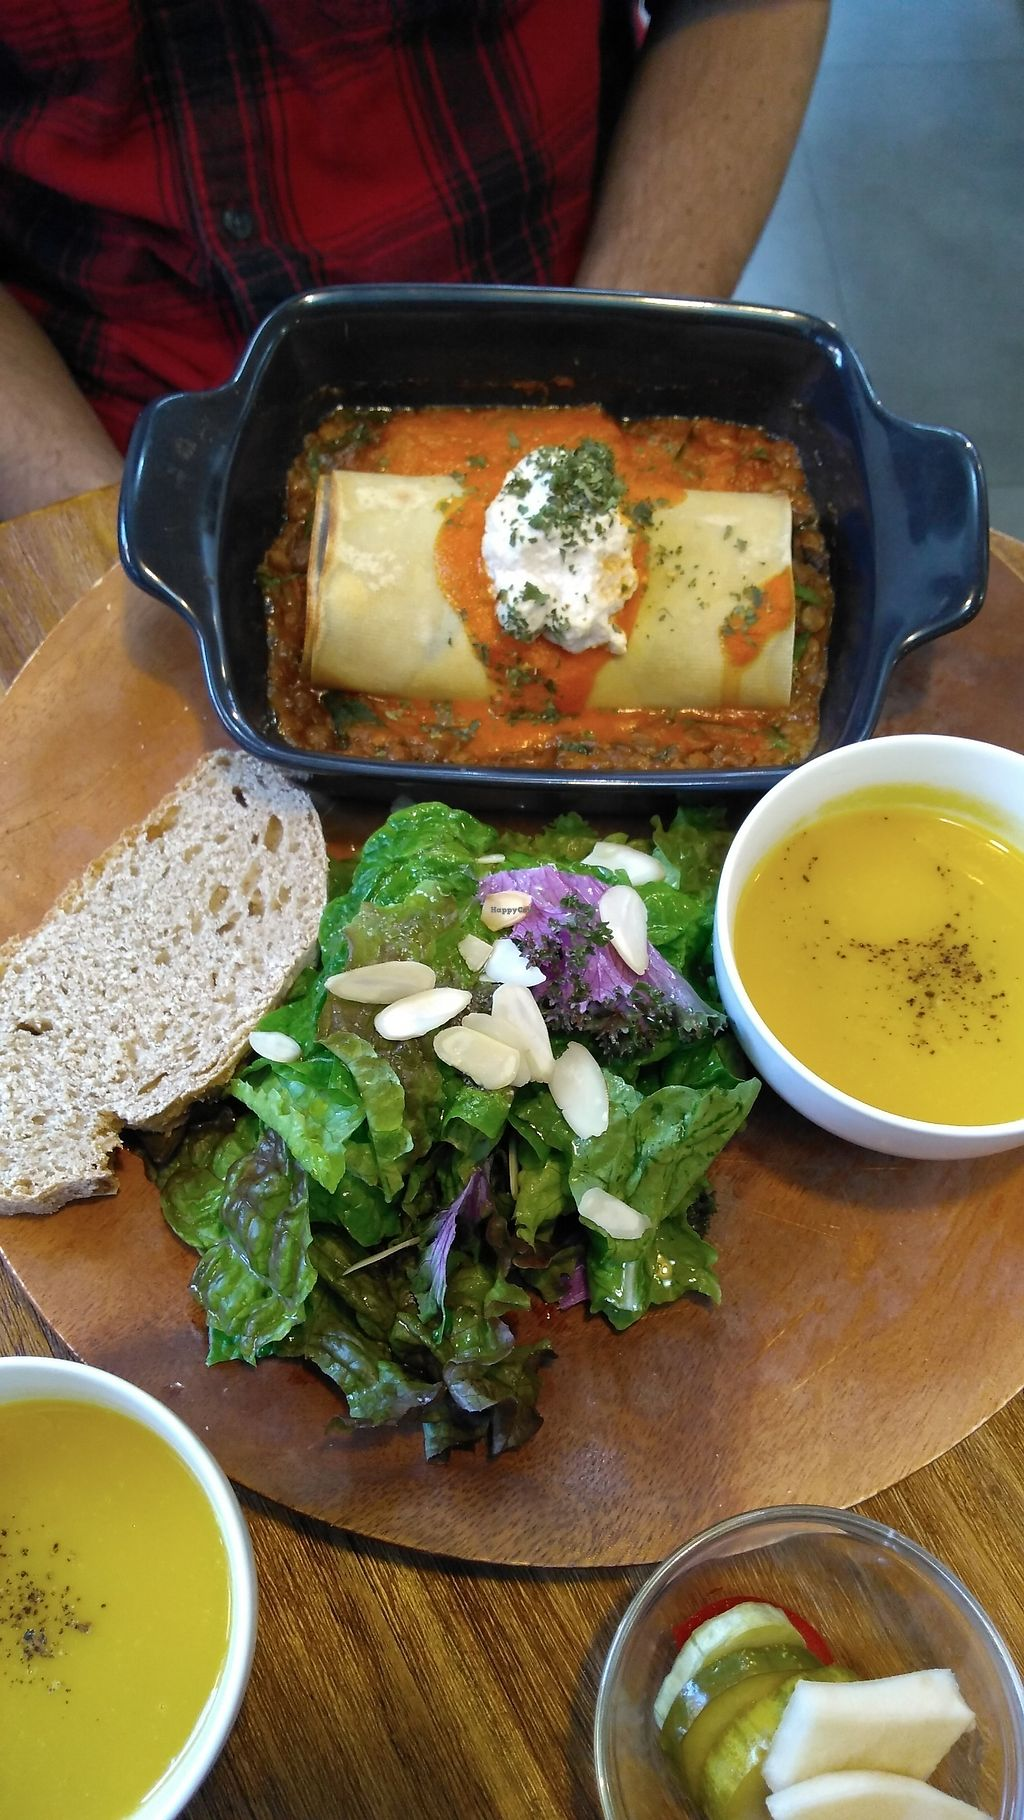 """Photo of Cook and Book - 쿡앤북  by <a href=""""/members/profile/egietz"""">egietz</a> <br/>Lasagna roll and pumpkin soup w/ a side salad and bread <br/> November 1, 2017  - <a href='/contact/abuse/image/44022/320630'>Report</a>"""